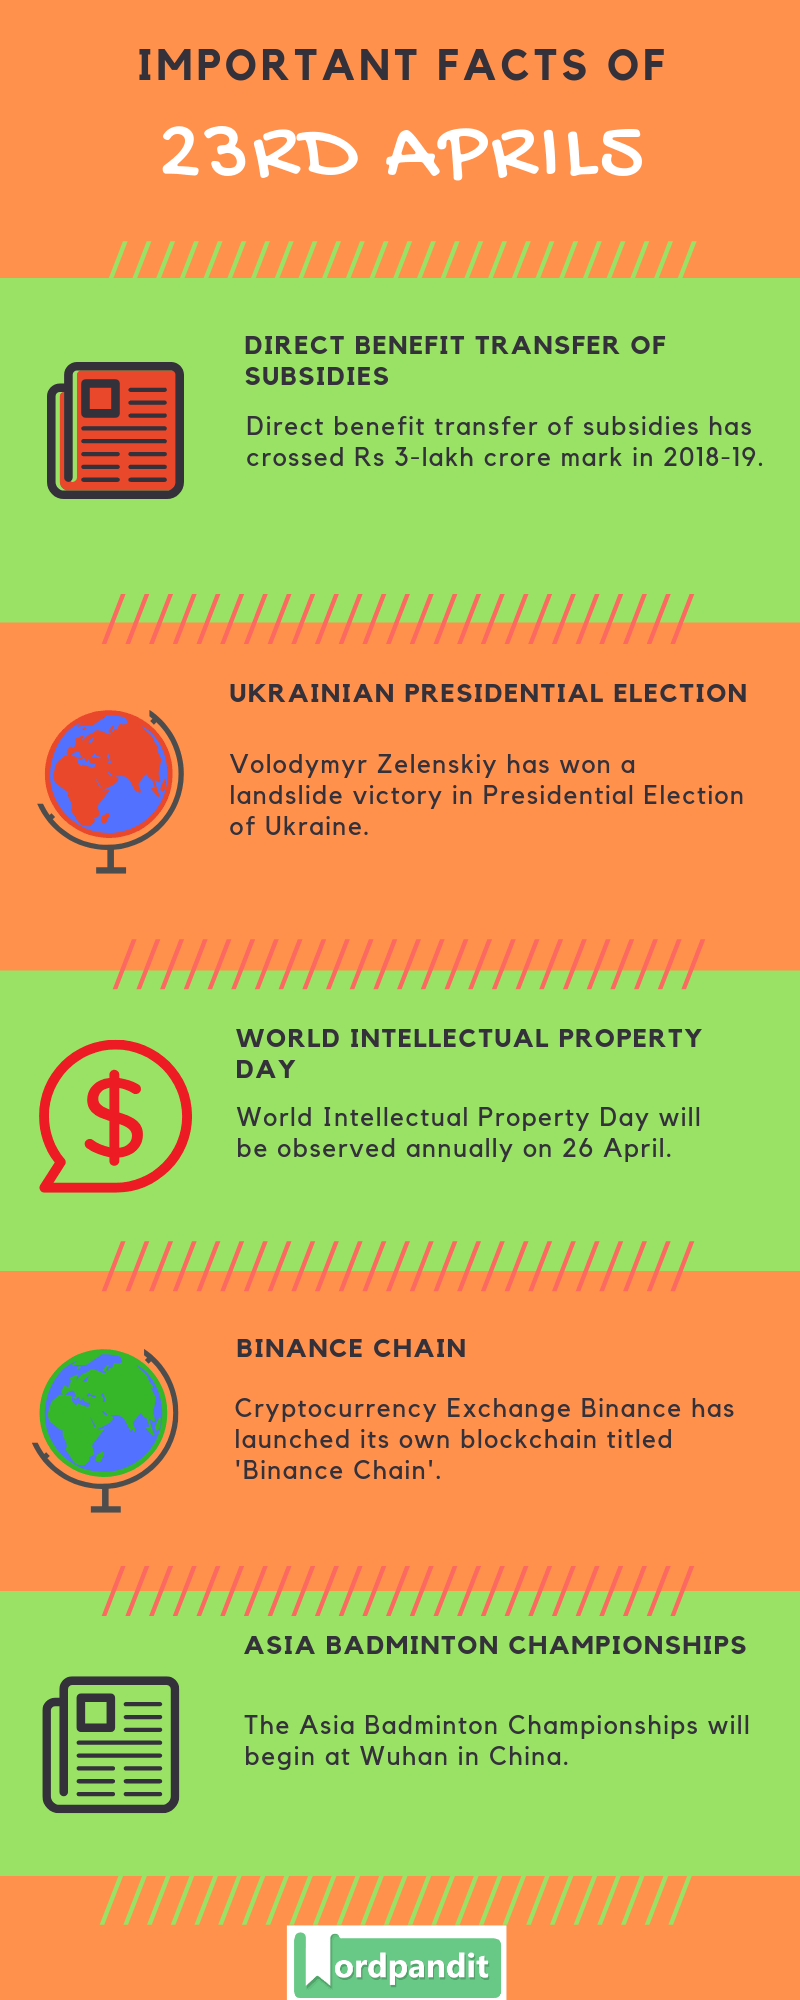 Daily Current Affairs 23 April 2019 Current Affairs Quiz 23 April 2019 Current Affairs Infographic